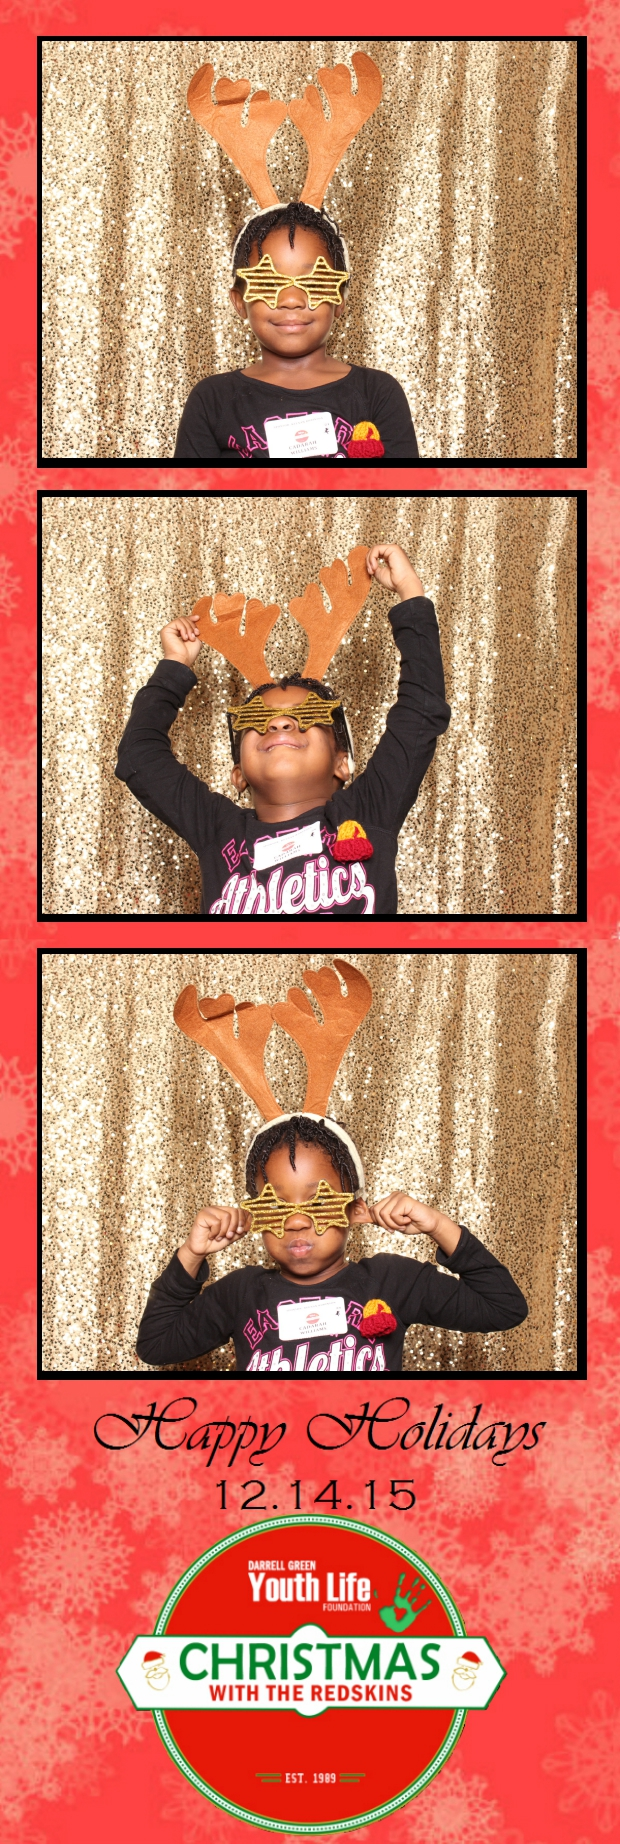 Guest House Events Photo Booth DGYLF Strips (32).jpg